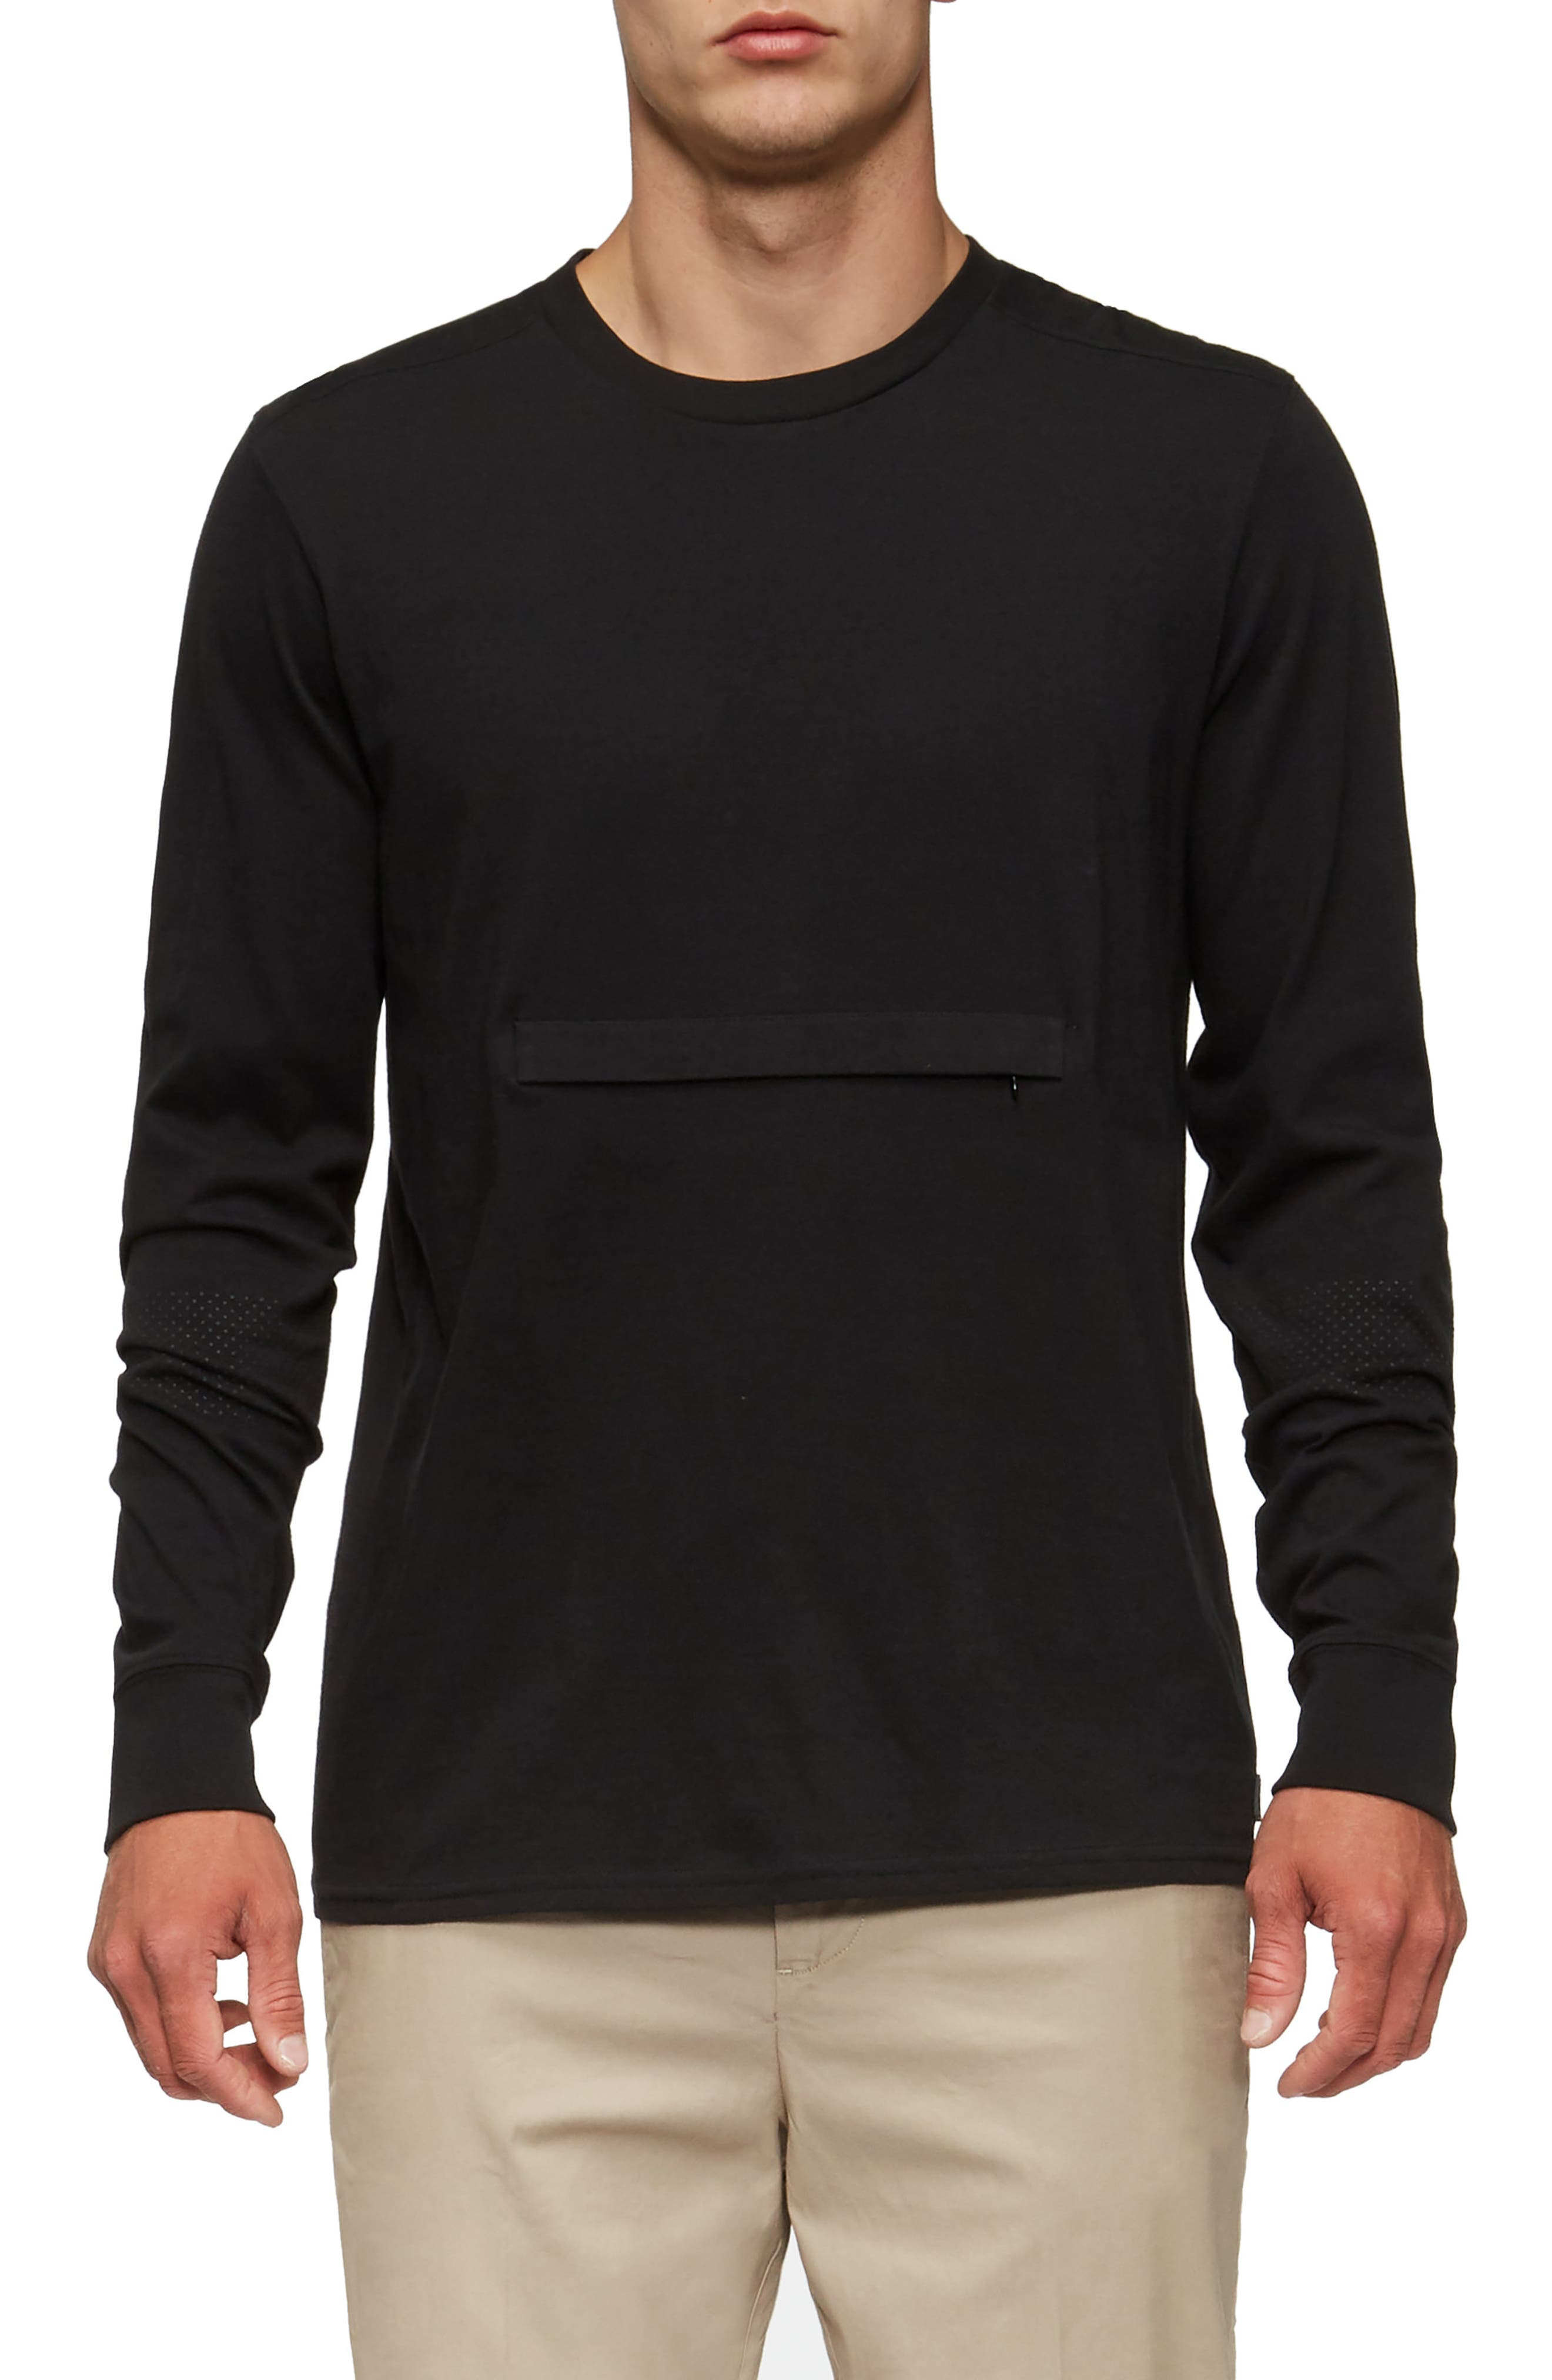 Lowell Long Sleeve T-Shirt,                             Main thumbnail 1, color,                             001